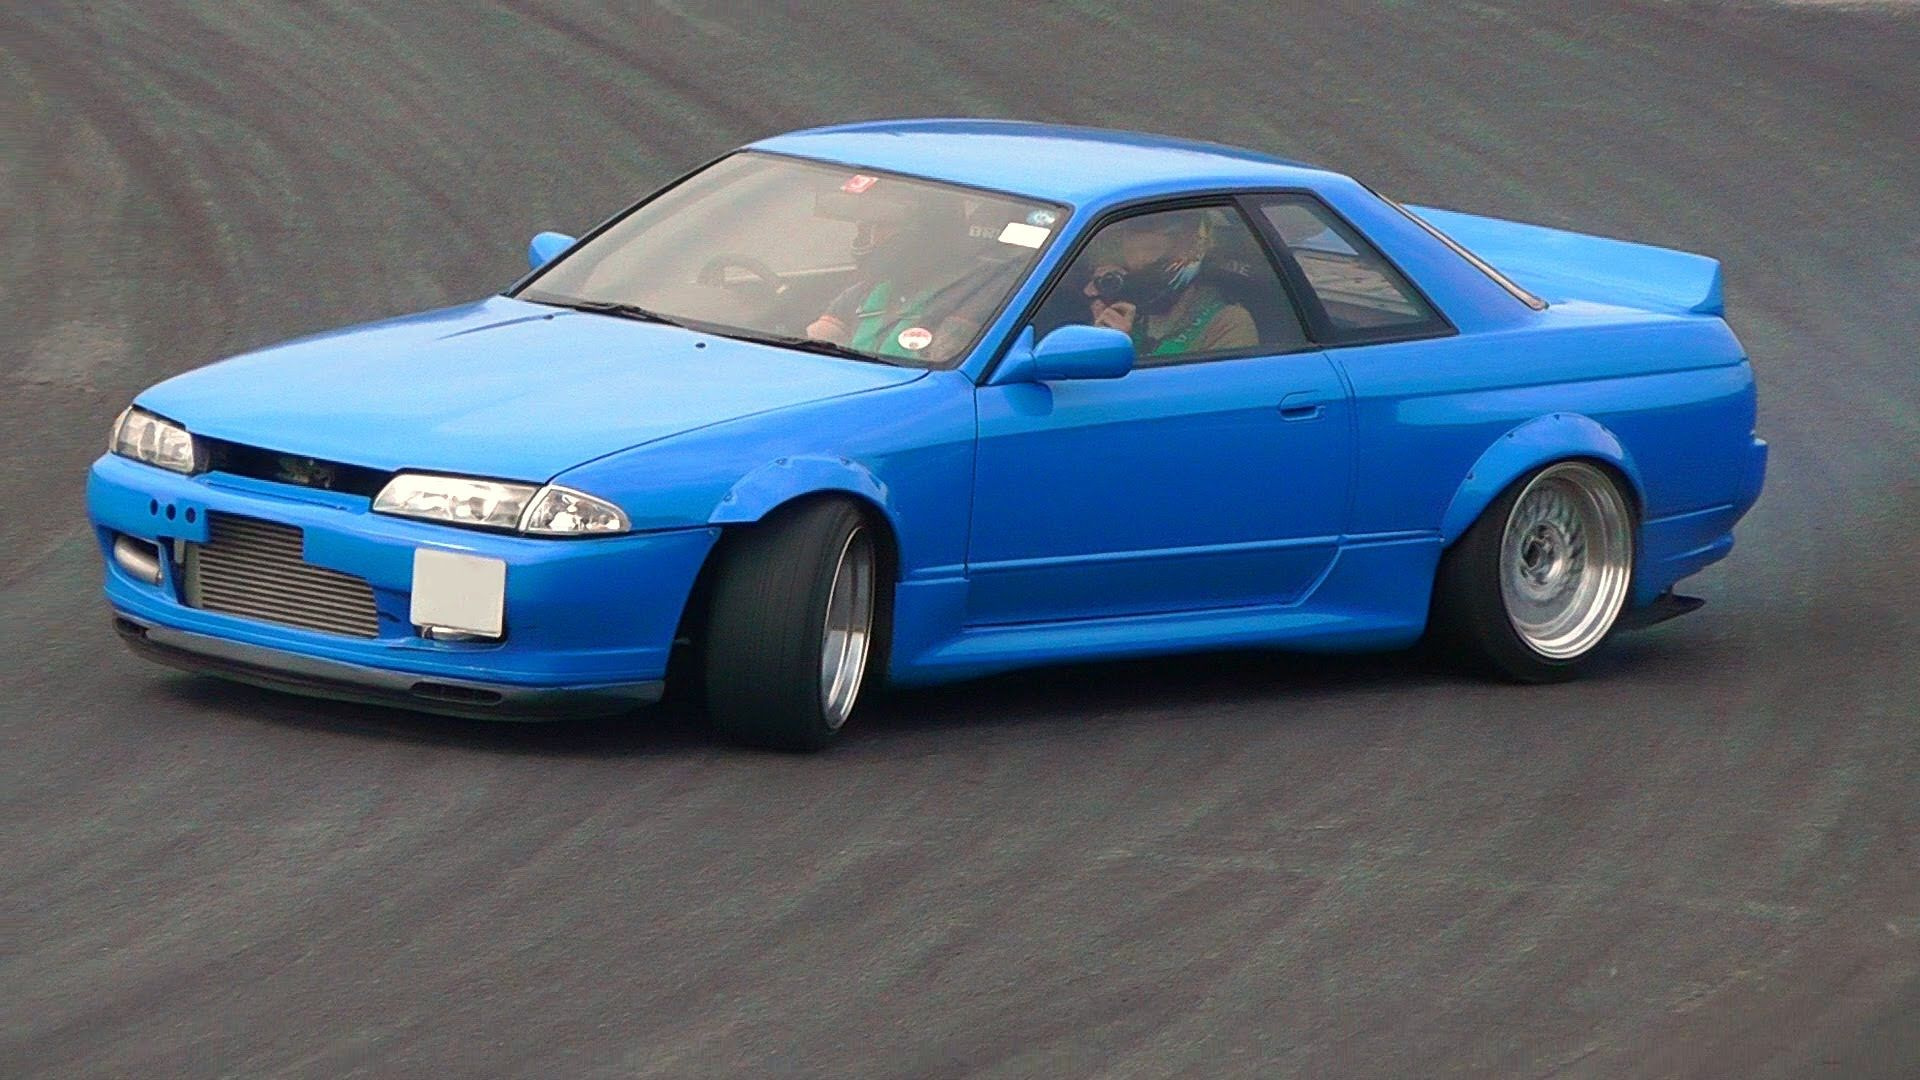 A Clean Blue R32 Skyline With A Rocket Bunny Wing Properly Stanced Drifting Nissan Gtr R32 Nissan Skyline Street Racing Cars